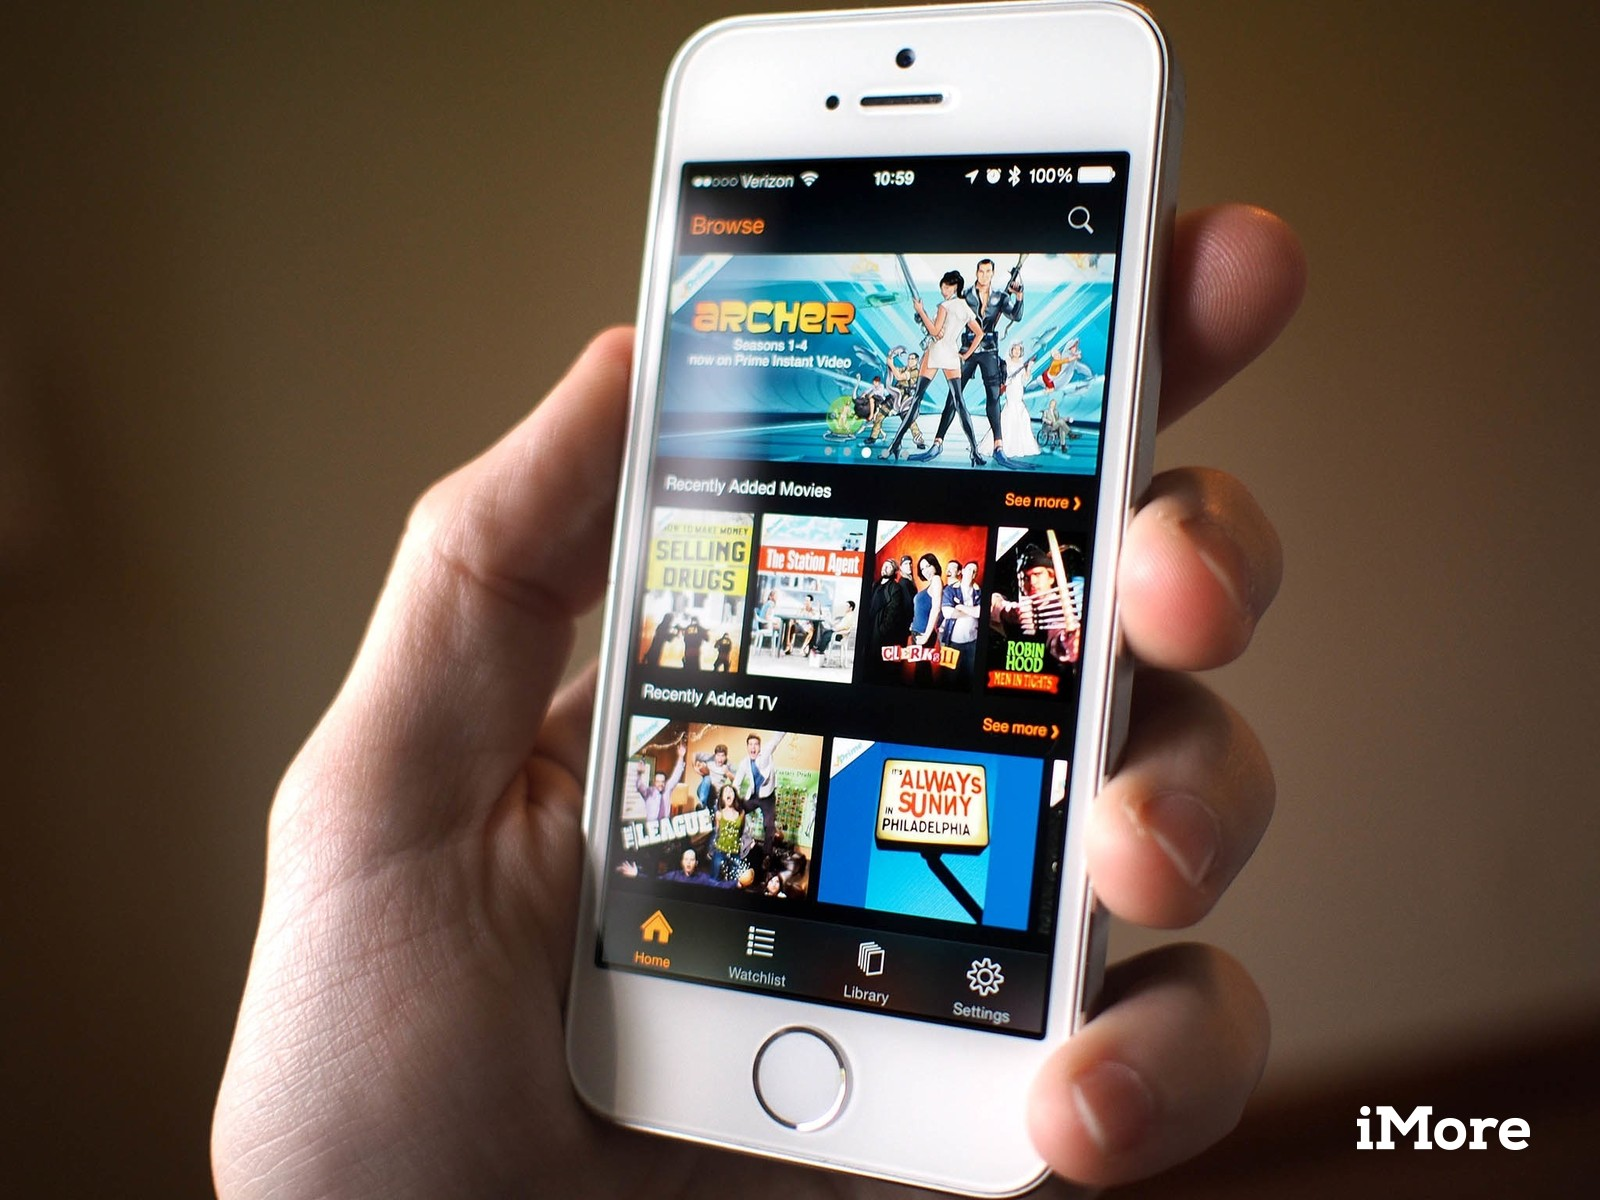 Amazon Instant Video on an iPhone 5s